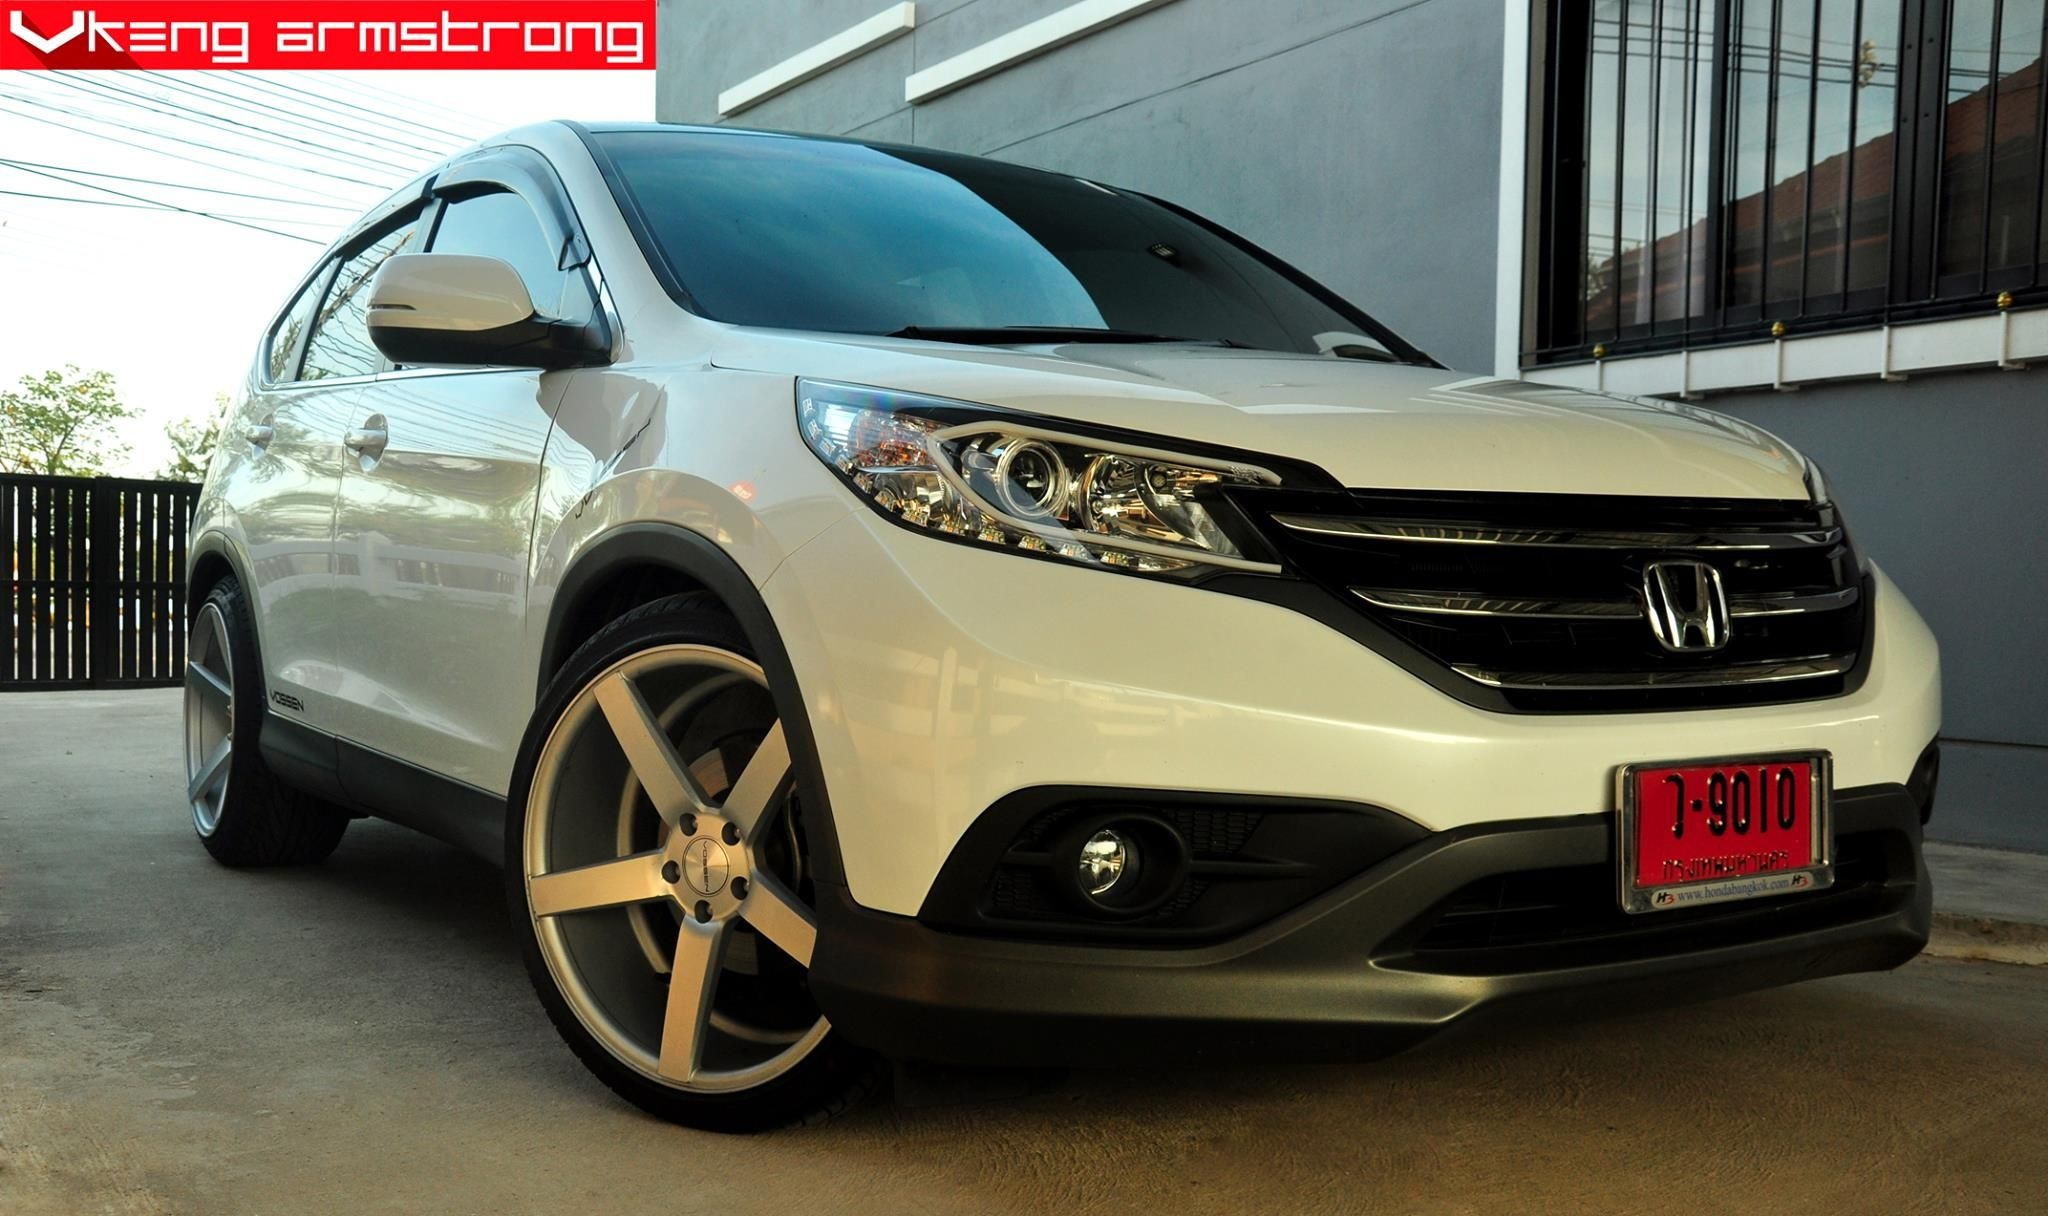 Honda Suv Custom Inspirational 20 Vossen Cv3s Honda Crv G4 From Thailand Via Keng Armstrong-633 Of New Honda Suv Custom